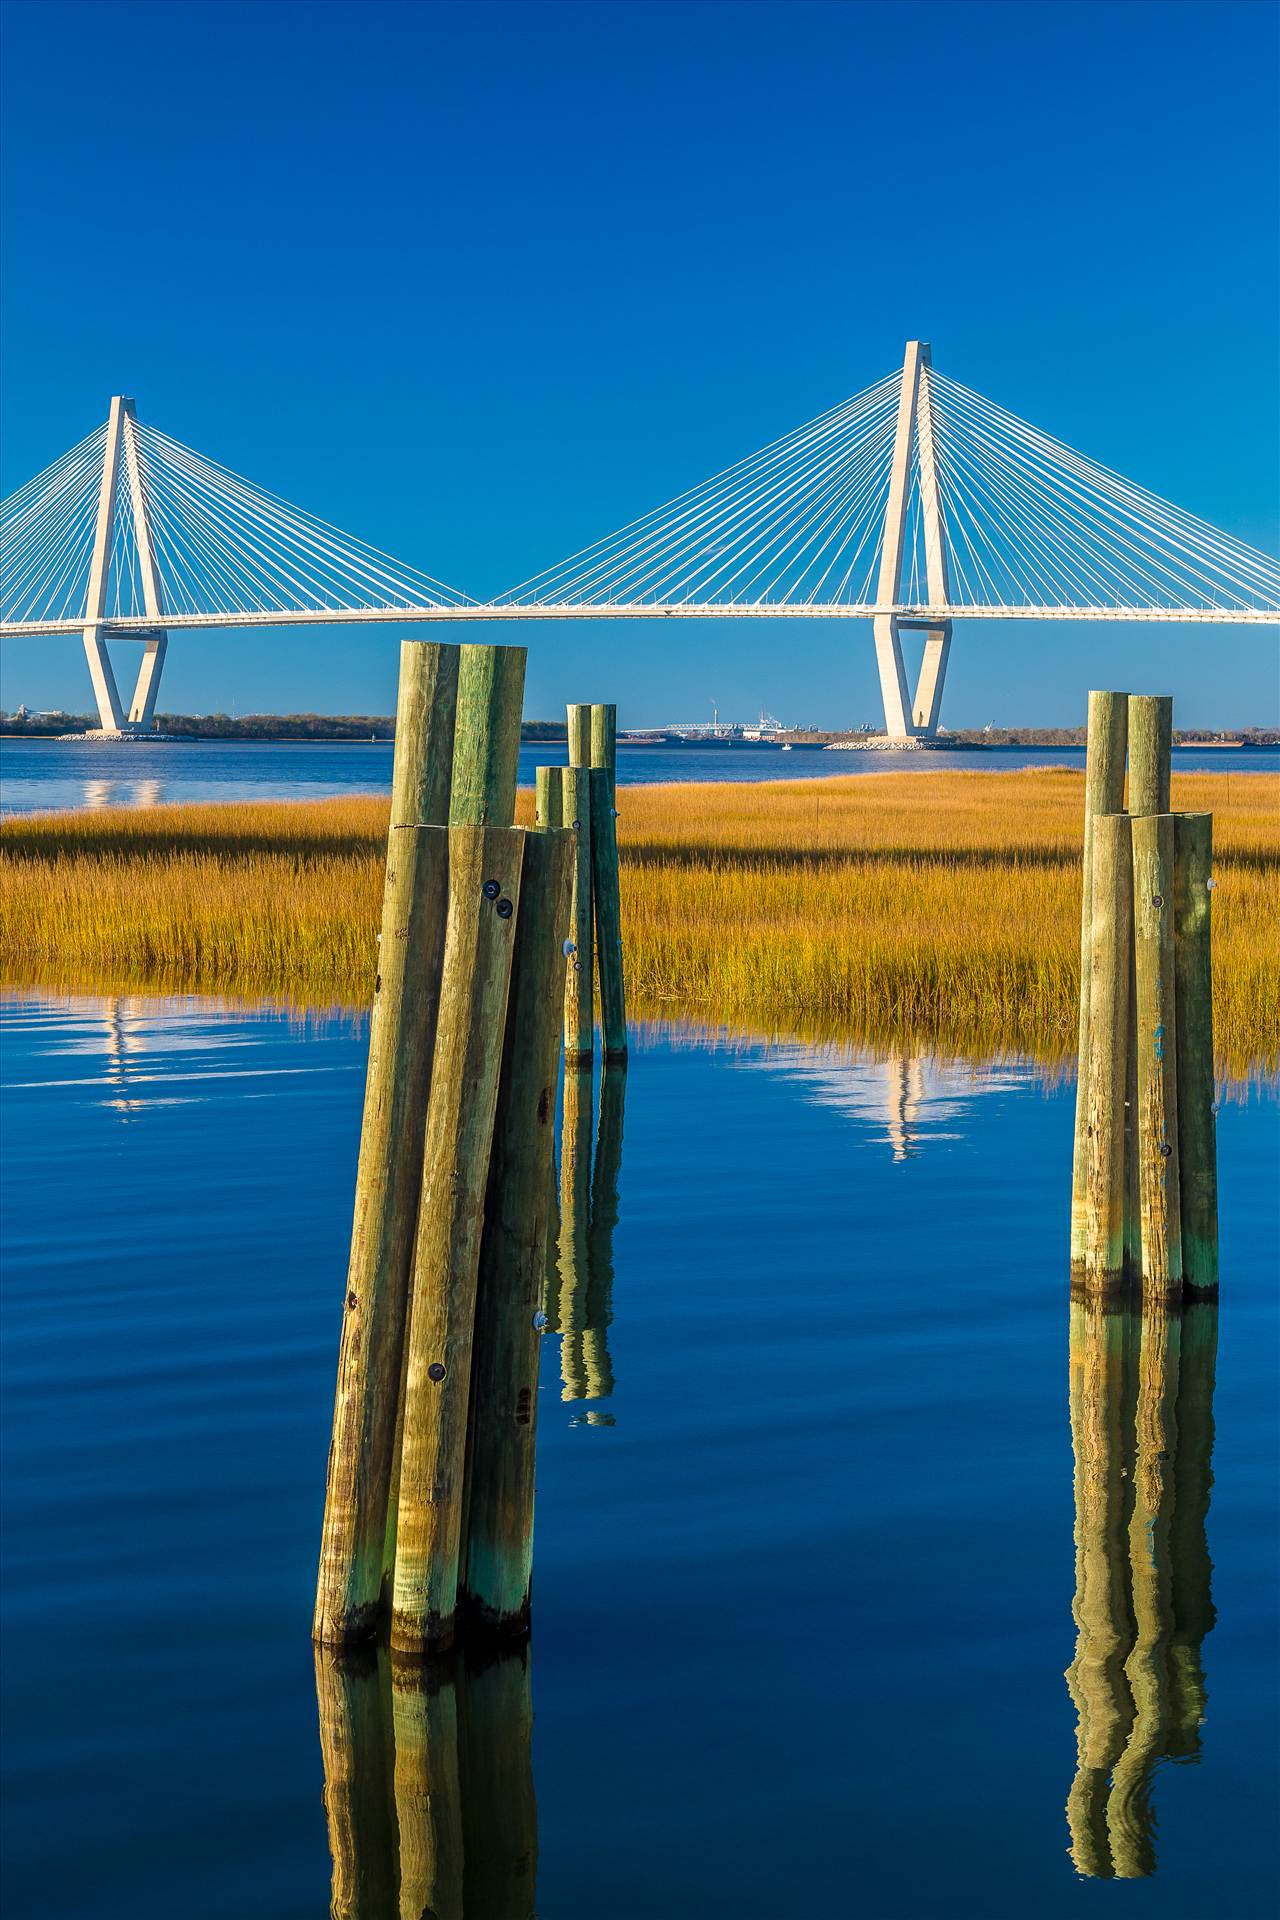 Arthur Ravenel Jr. Bridge From Patriots Point - From Patriots Point Naval & Maritime Museum in Charleston, South Carolina. by D Scott Smith